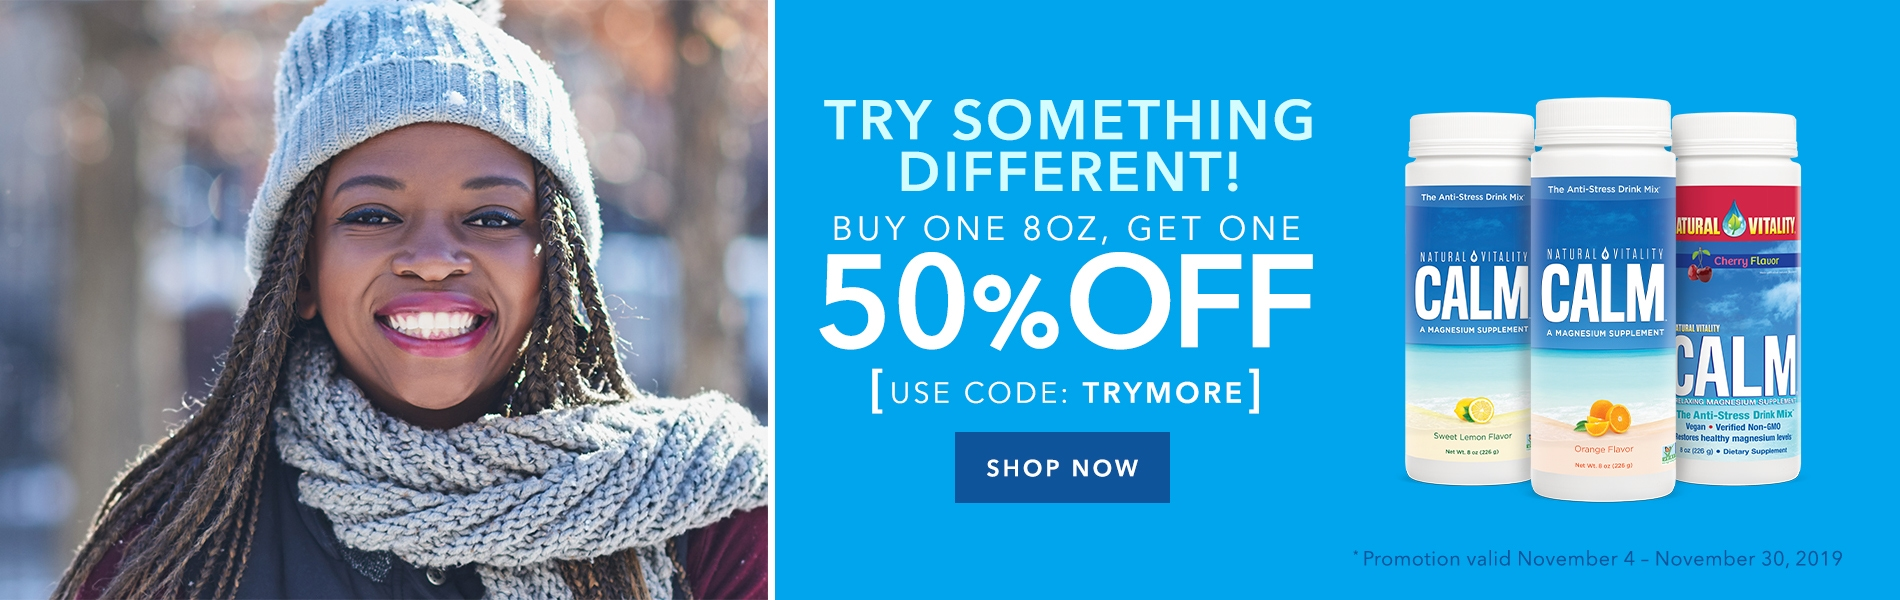 BUY 1 8OZ, GET 1 8OZ 50% OFF: Use Code: TRYMORE